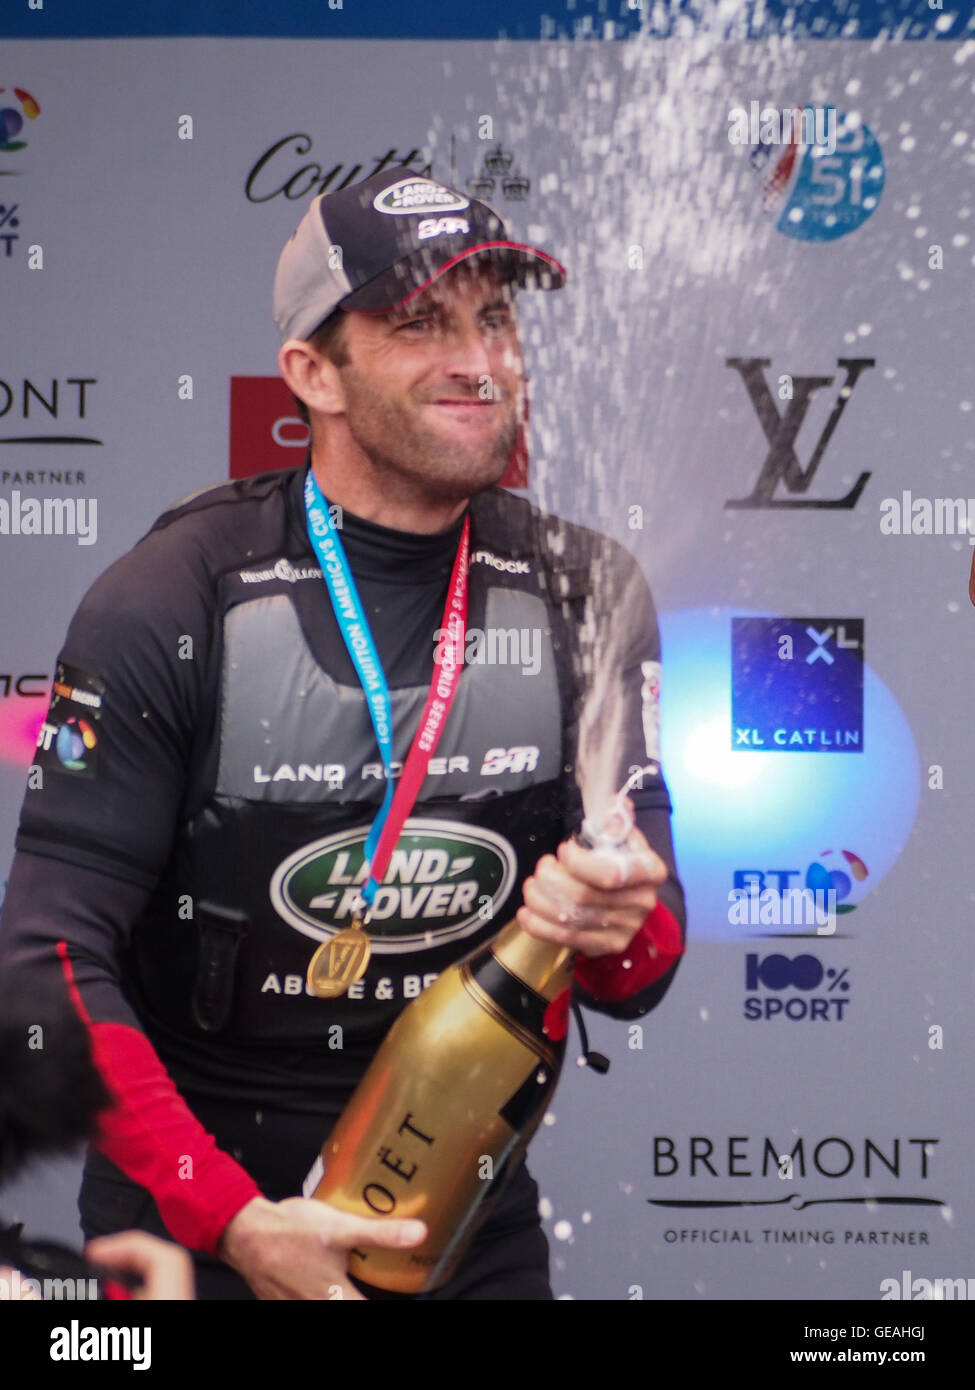 Portsmouth, UK, July 24 2016. Sir Ben Ainslie sprays champaign the podium after winning the regatta at The Americas - Stock Image